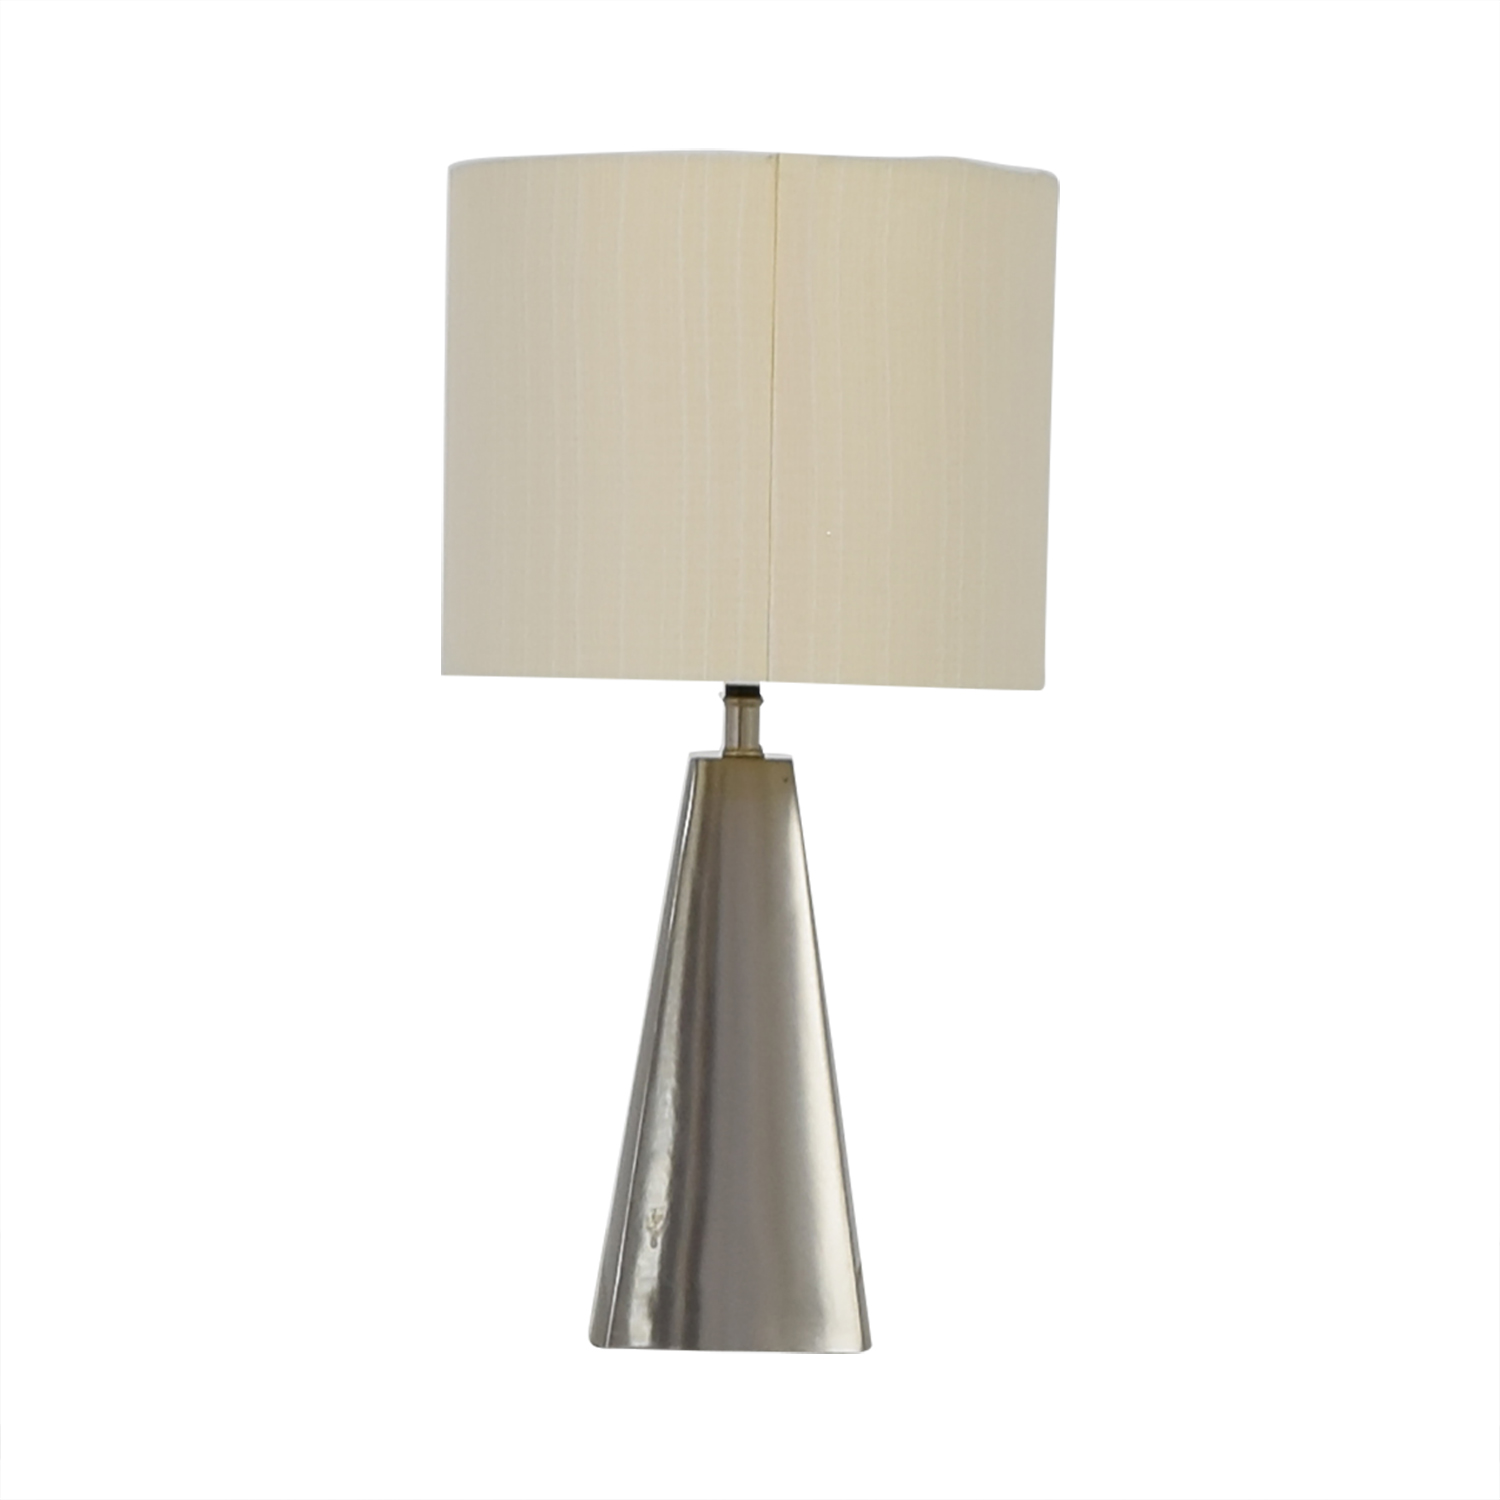 Crate & Barrel Crate & Barrel Brushed Silver Table Lamp Silver